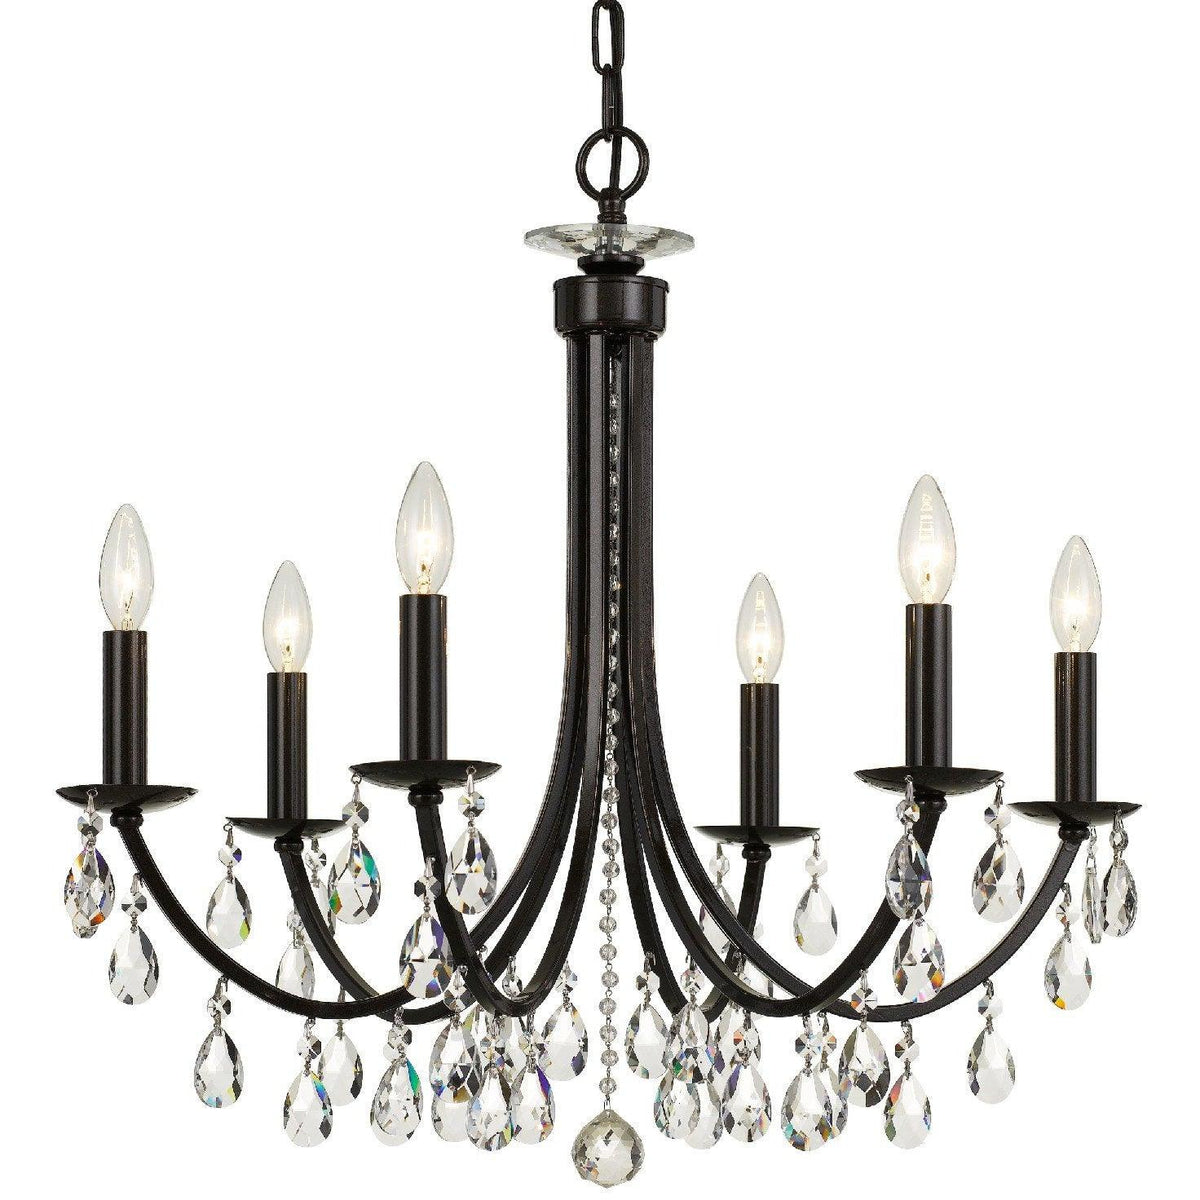 Crystorama - 8826-VZ-CL-S - Six Light Chandelier - Bridgehampton - Vibrant Bronze